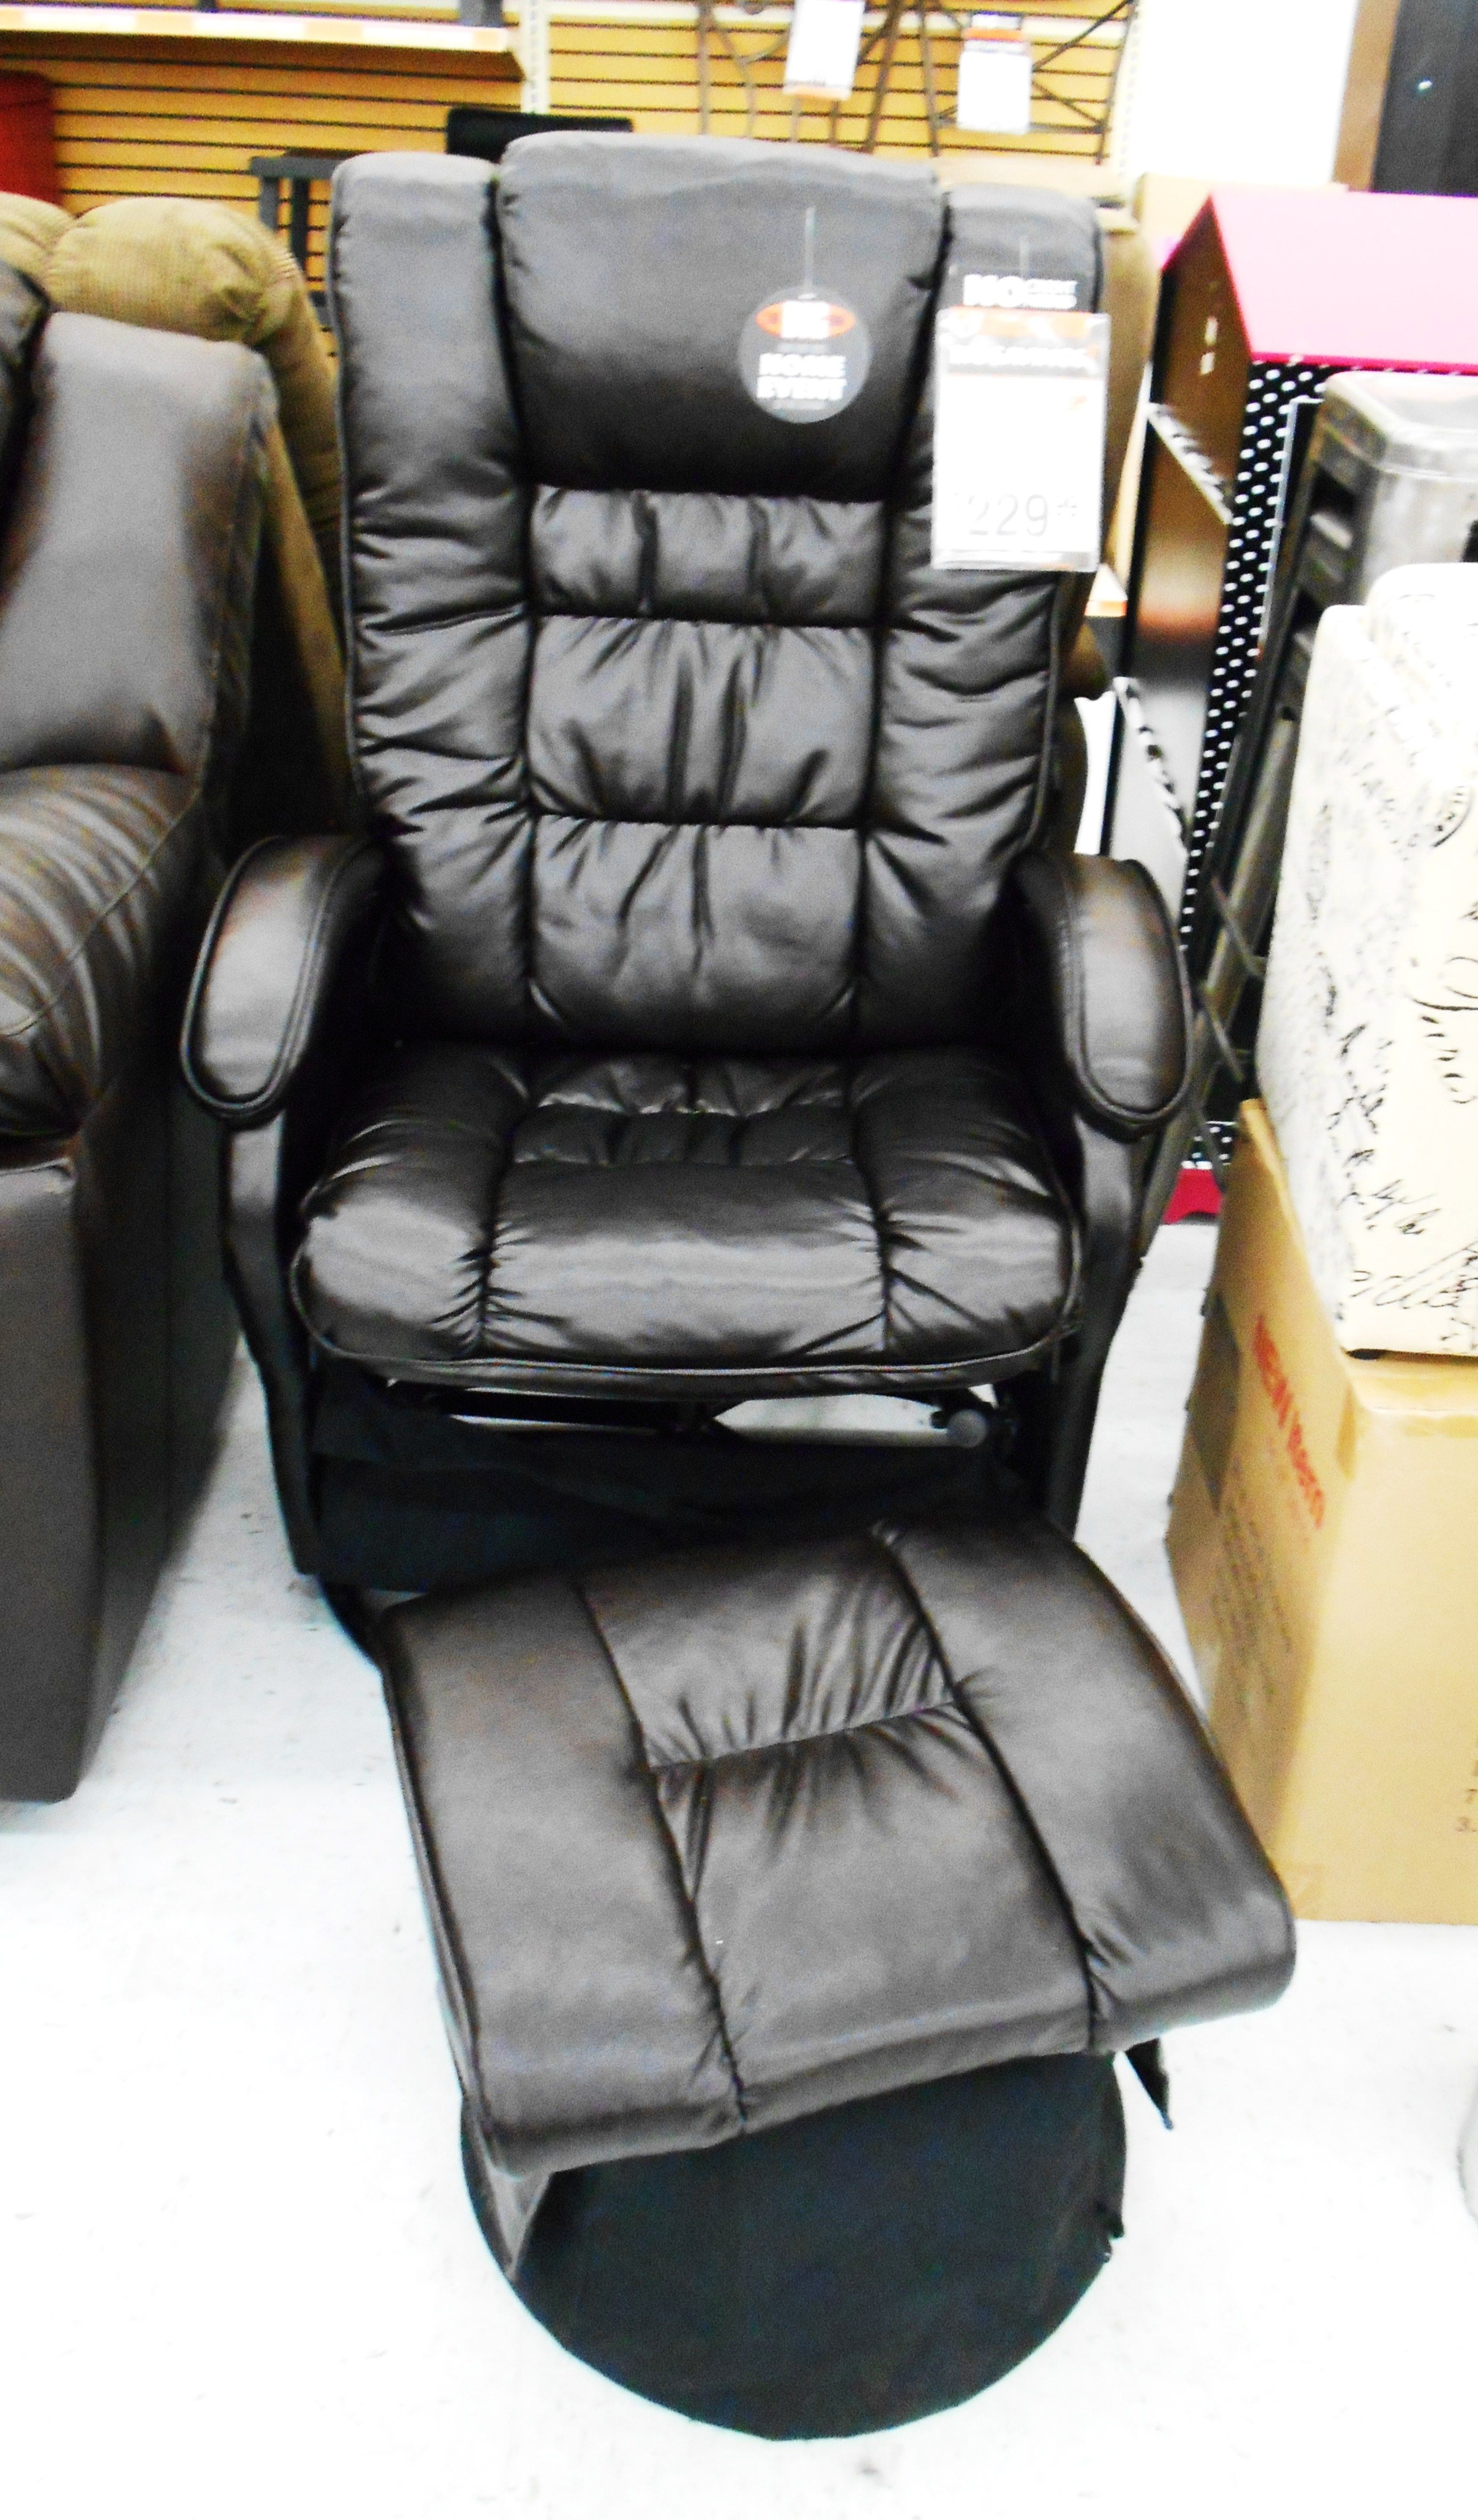 FauxLeather Glider Recliner With Ottoman 229.99 from Big